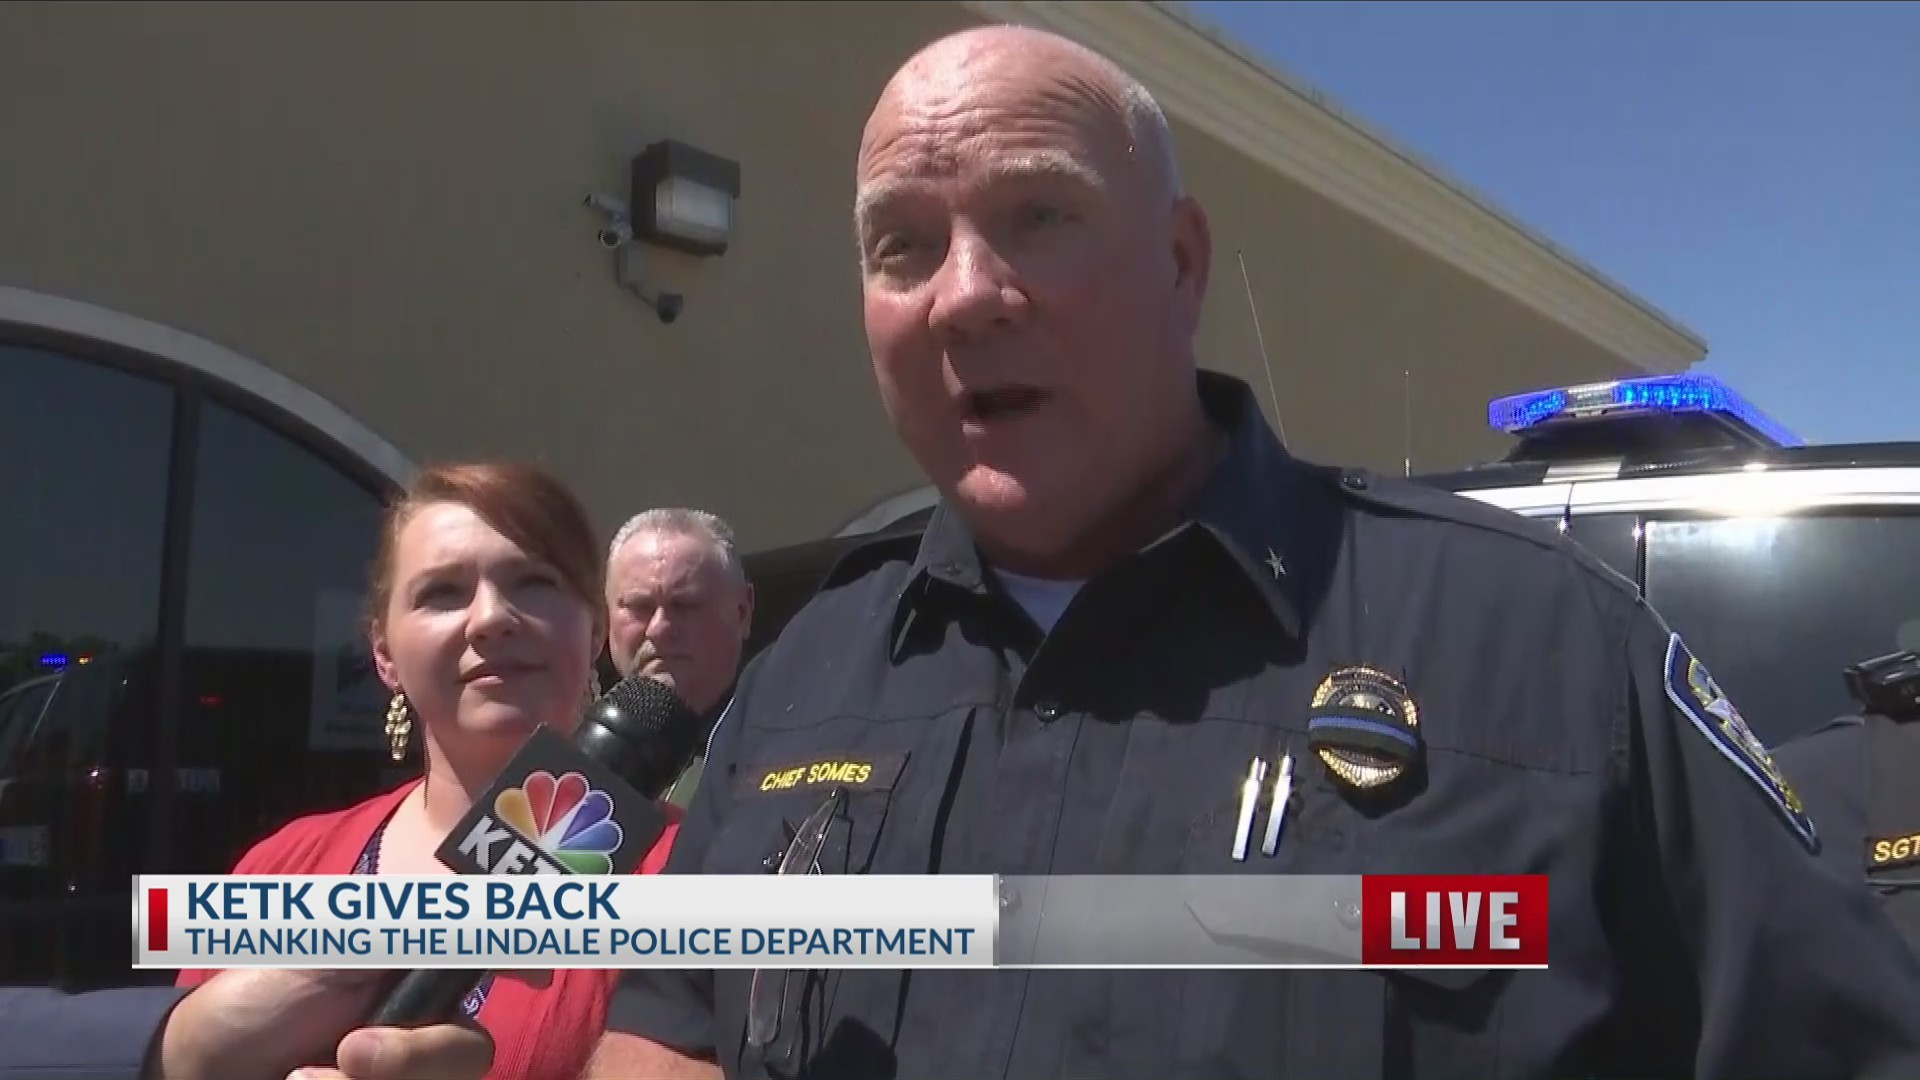 KETK Gives Back to Lindale Police Department